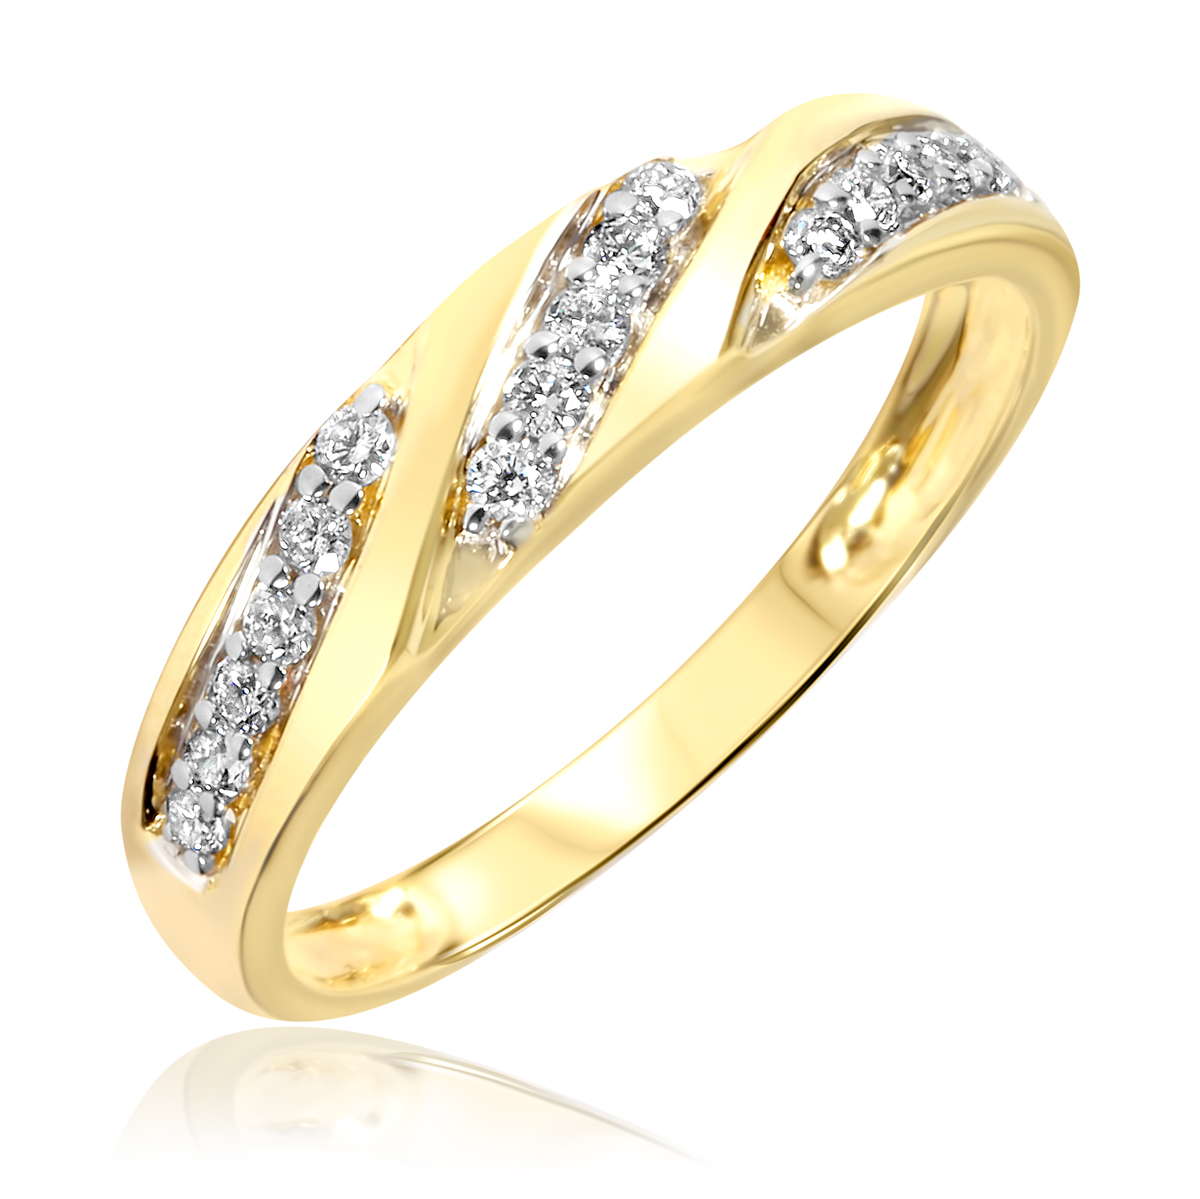 1 4 Carat T W Diamond Women s Wedding Ring 14K Yellow Gold